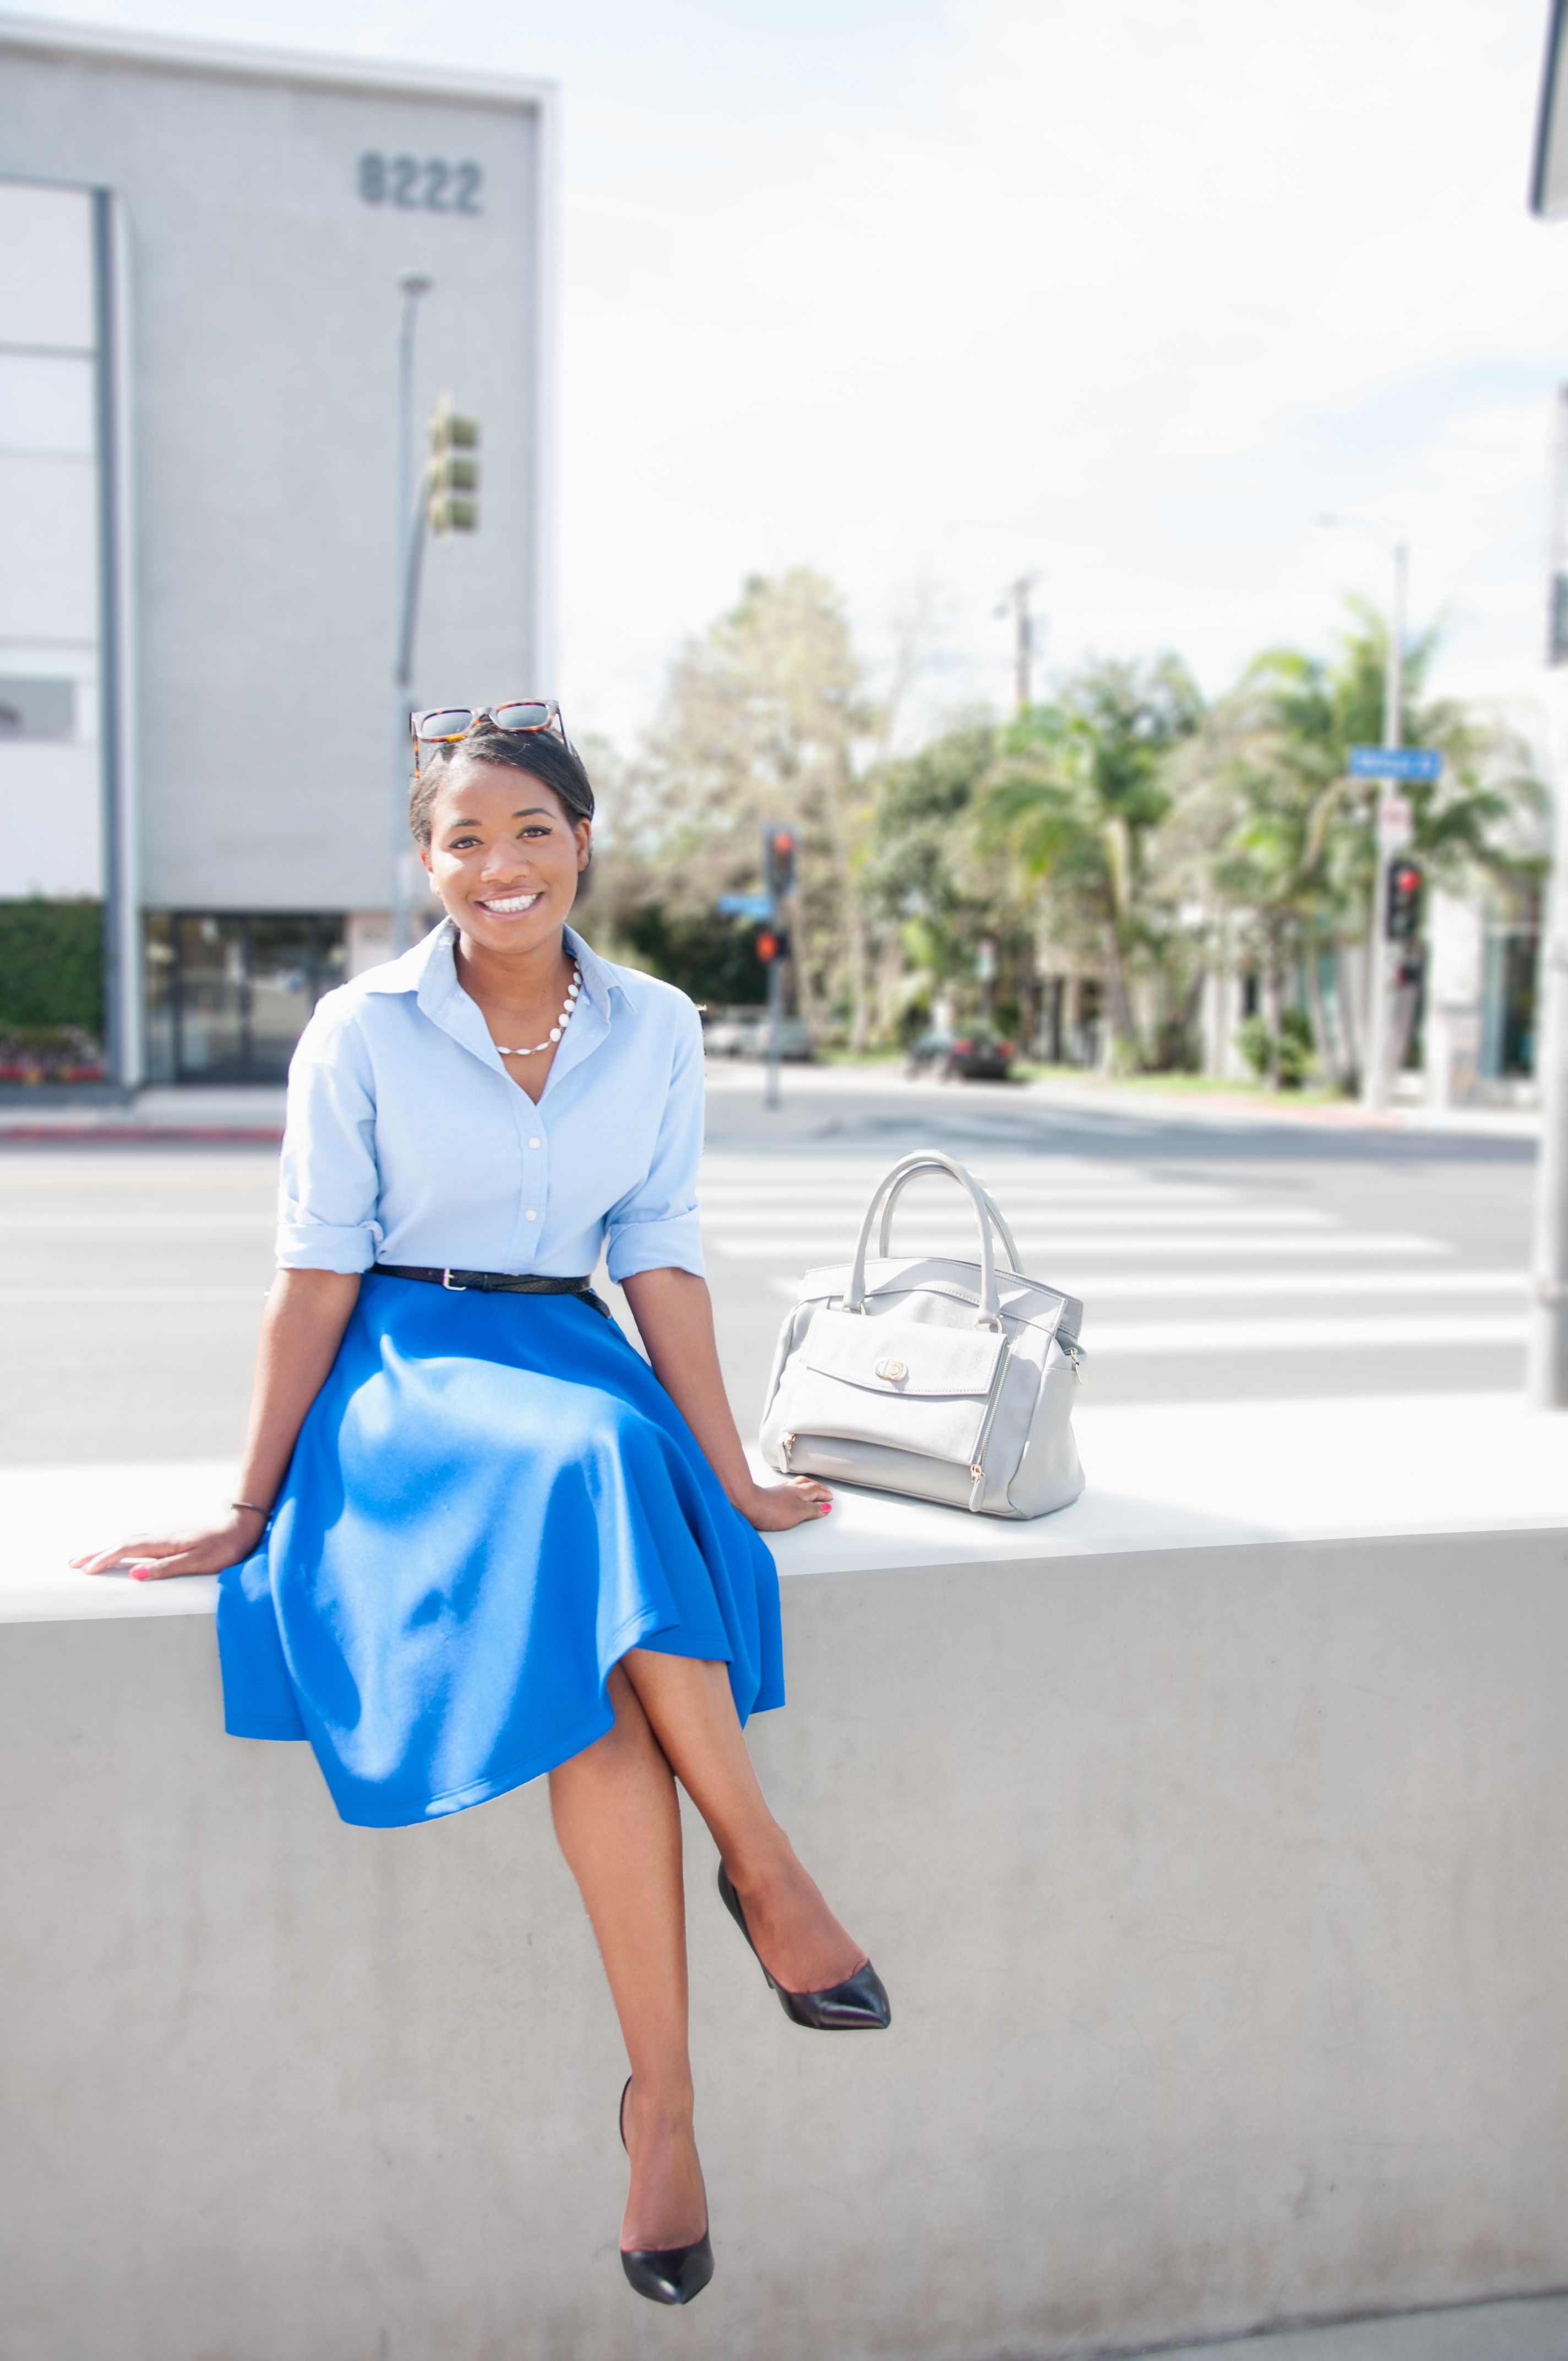 7da4a2ede13f5e Love the color combo, the bright blue skirt with a great length and style,  and the shirt is easy for nursing